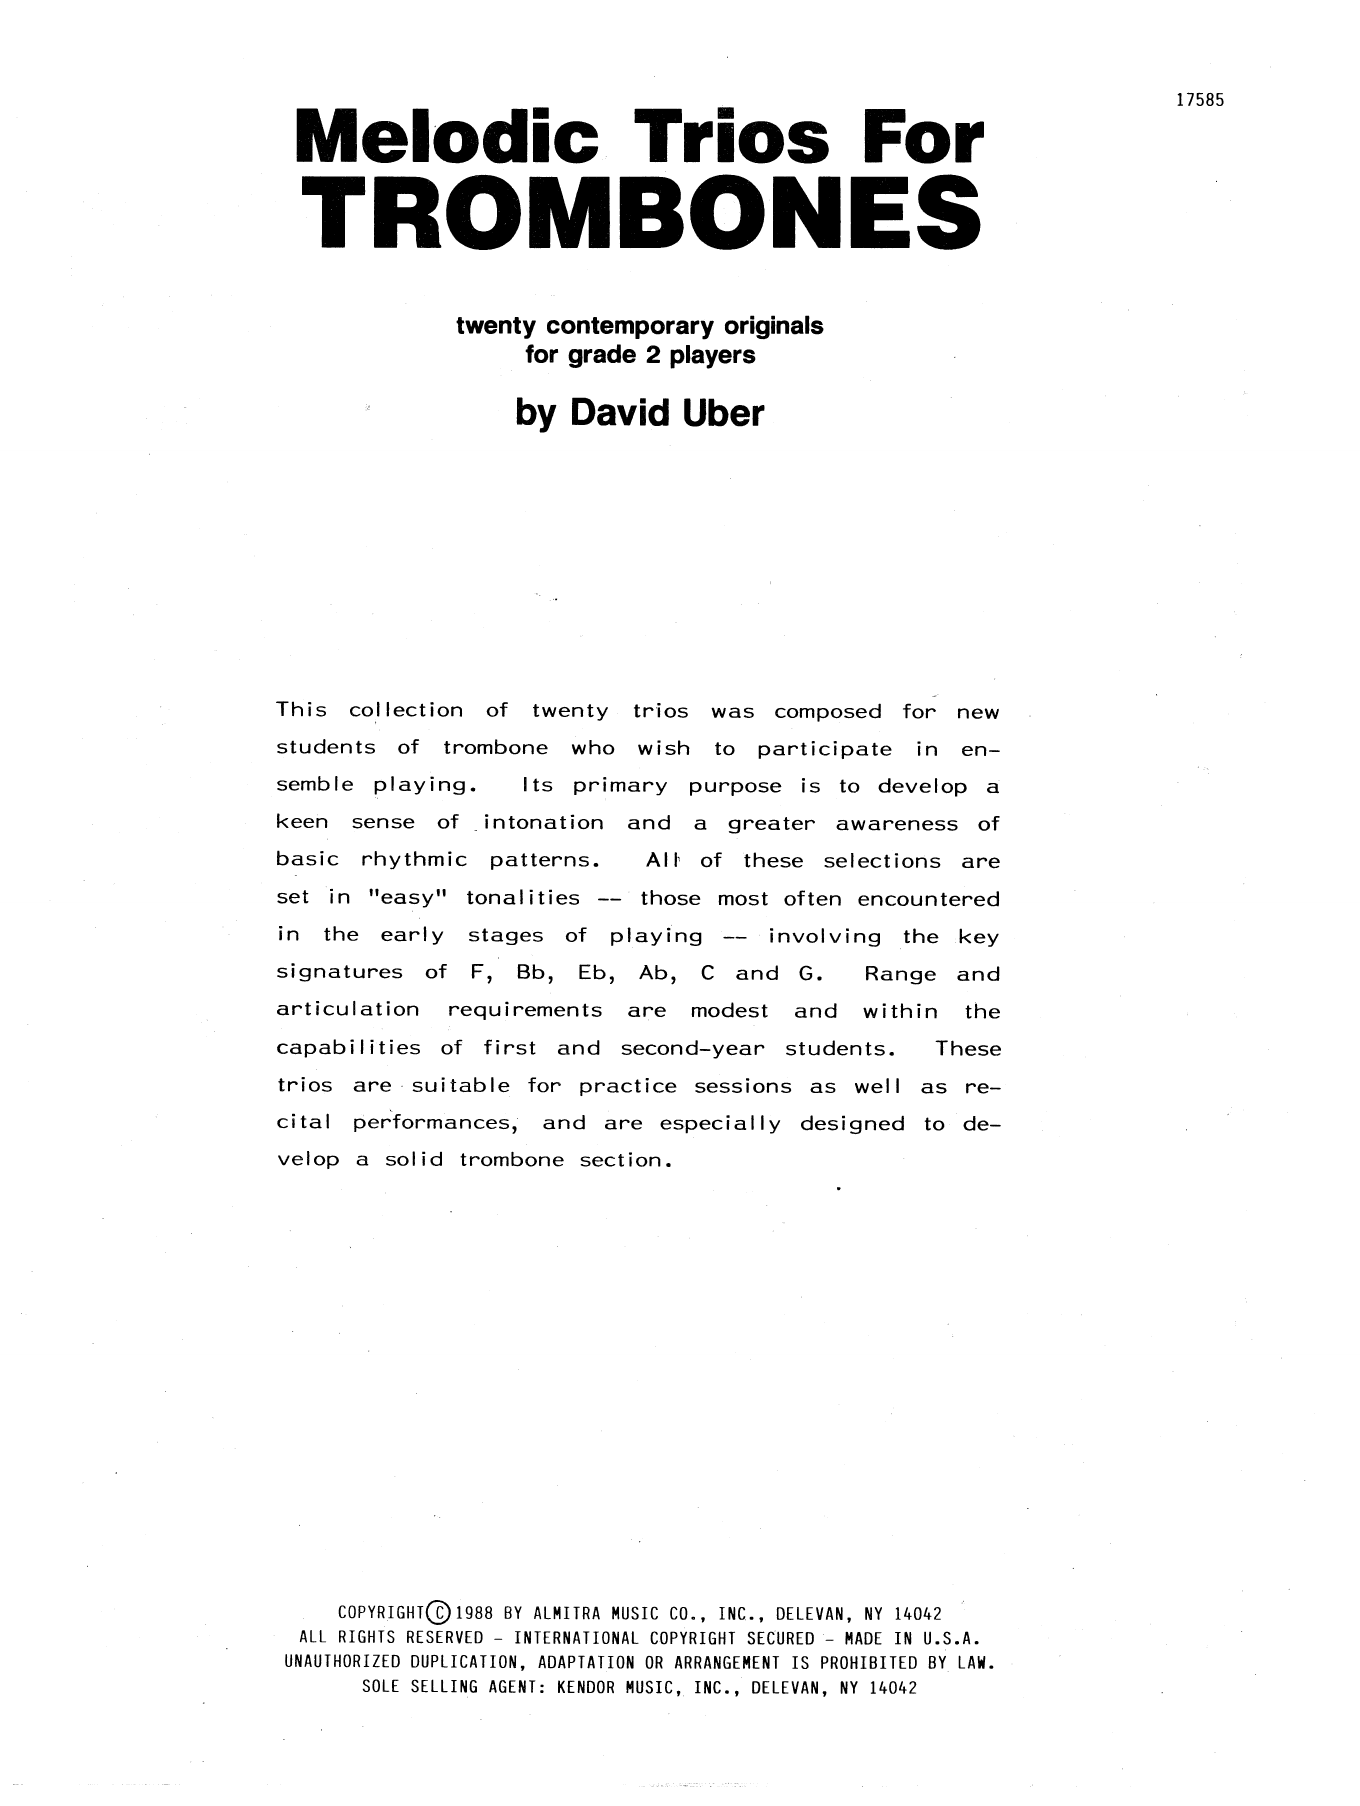 David Uber Melodic Trios For Trombones sheet music notes and chords